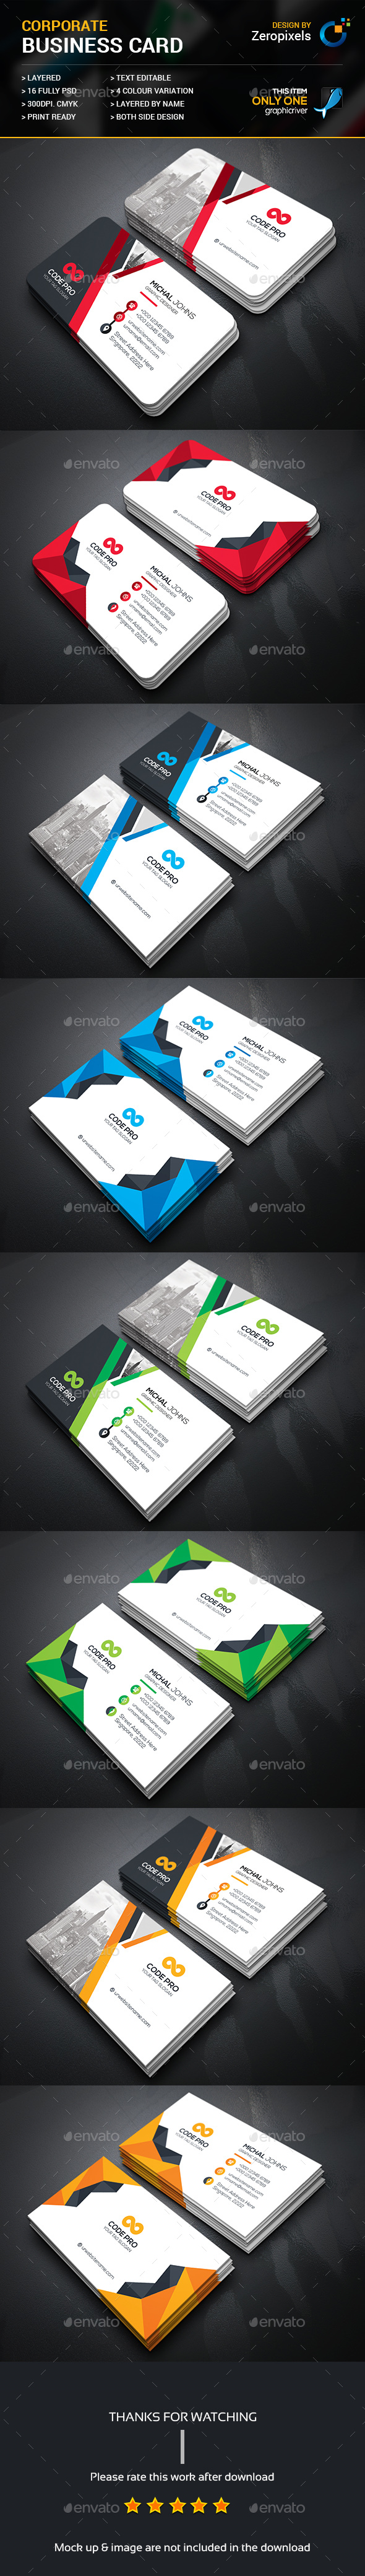 Corporate business card template psd bundle business card corporate business card template psd bundle reheart Image collections